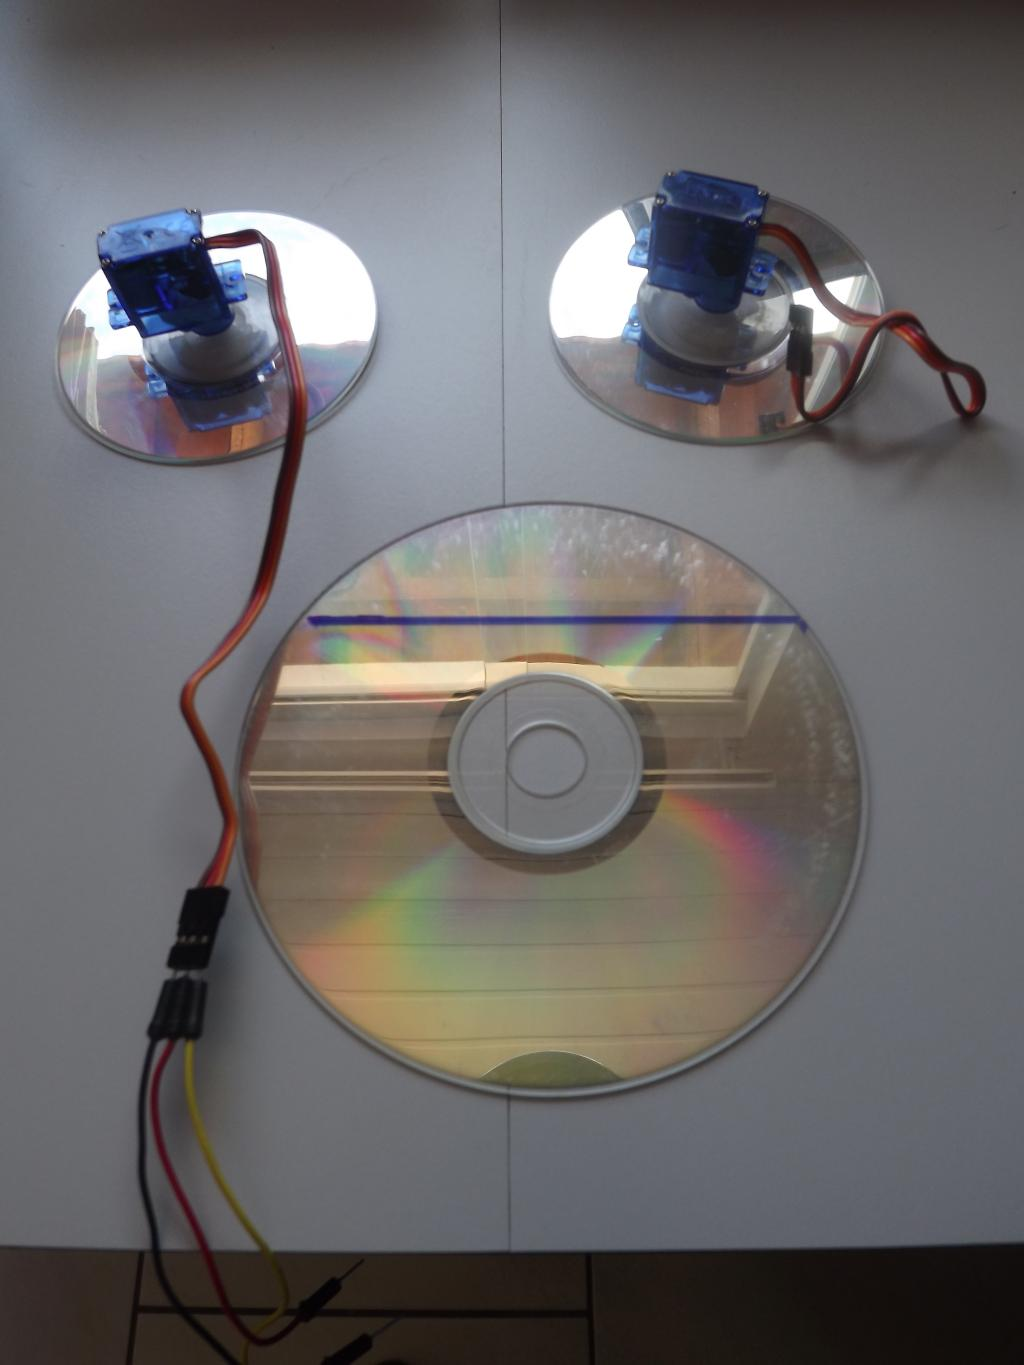 1 - cd base e mini CDs usados como rodas conectados ao servos